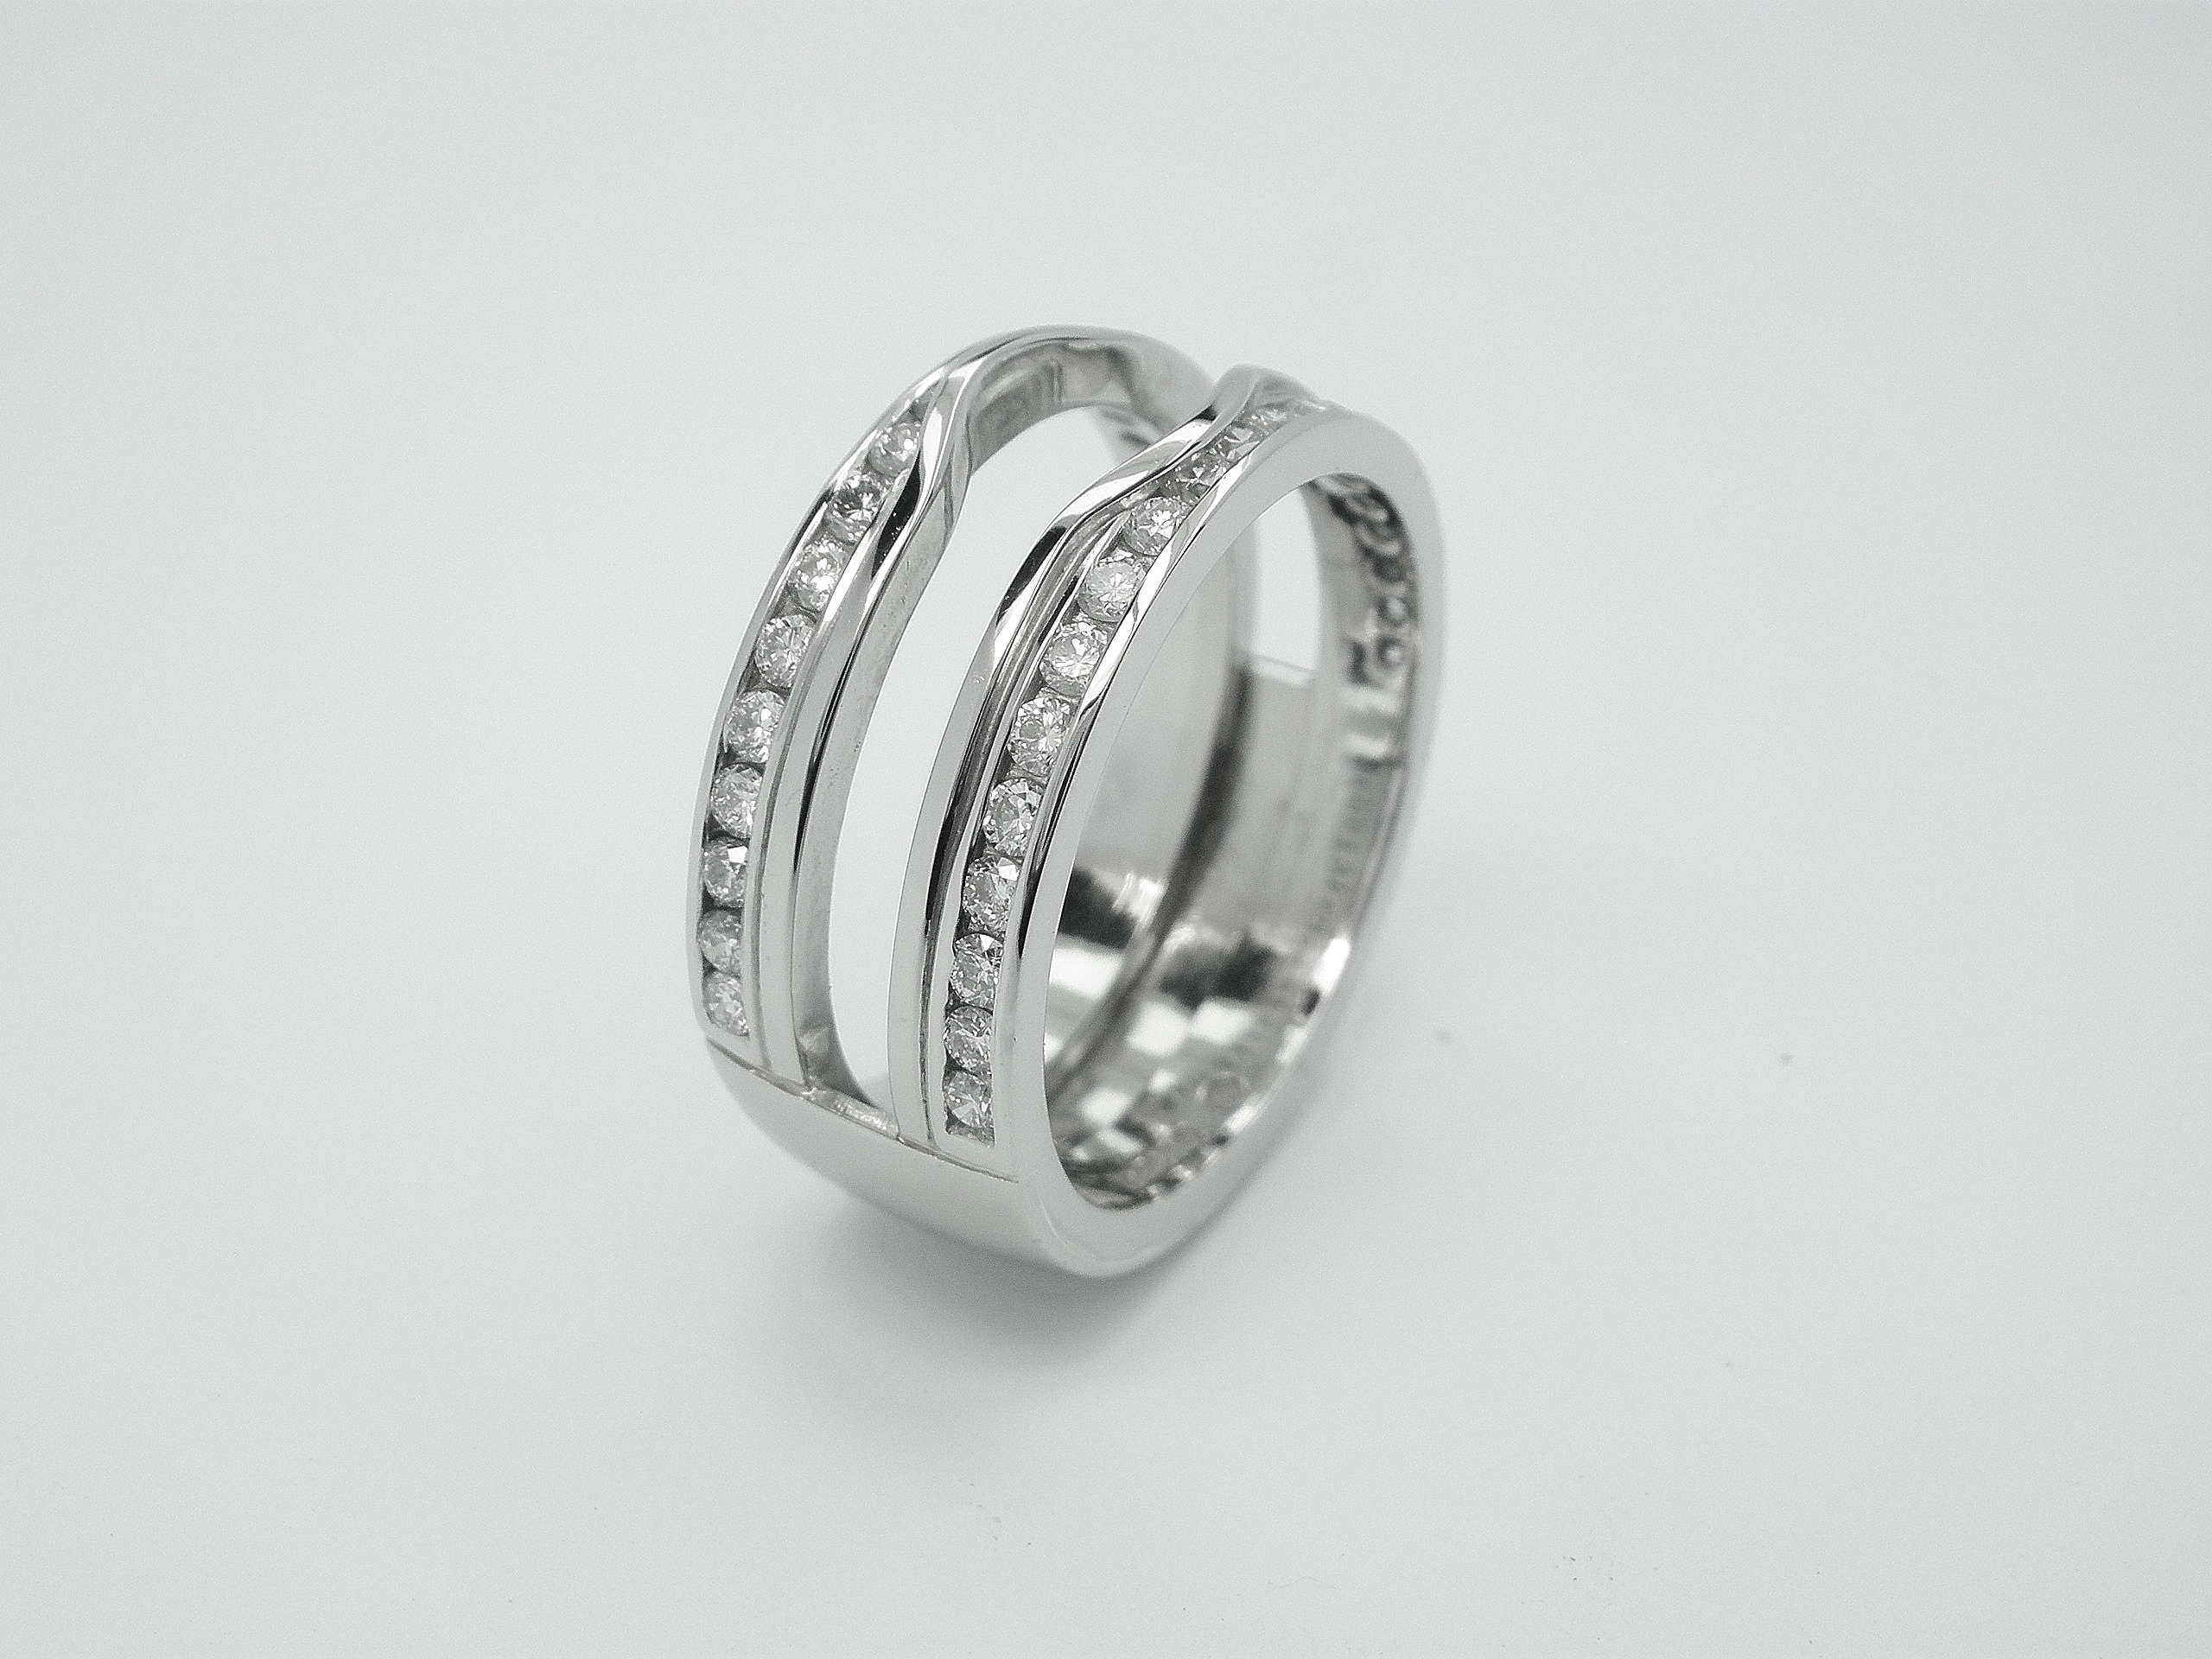 Double 'Embrace' platinum wedding ring channel set with round brilliant diamonds & created to receive the insertion of a single stone round diamond engagement ring.